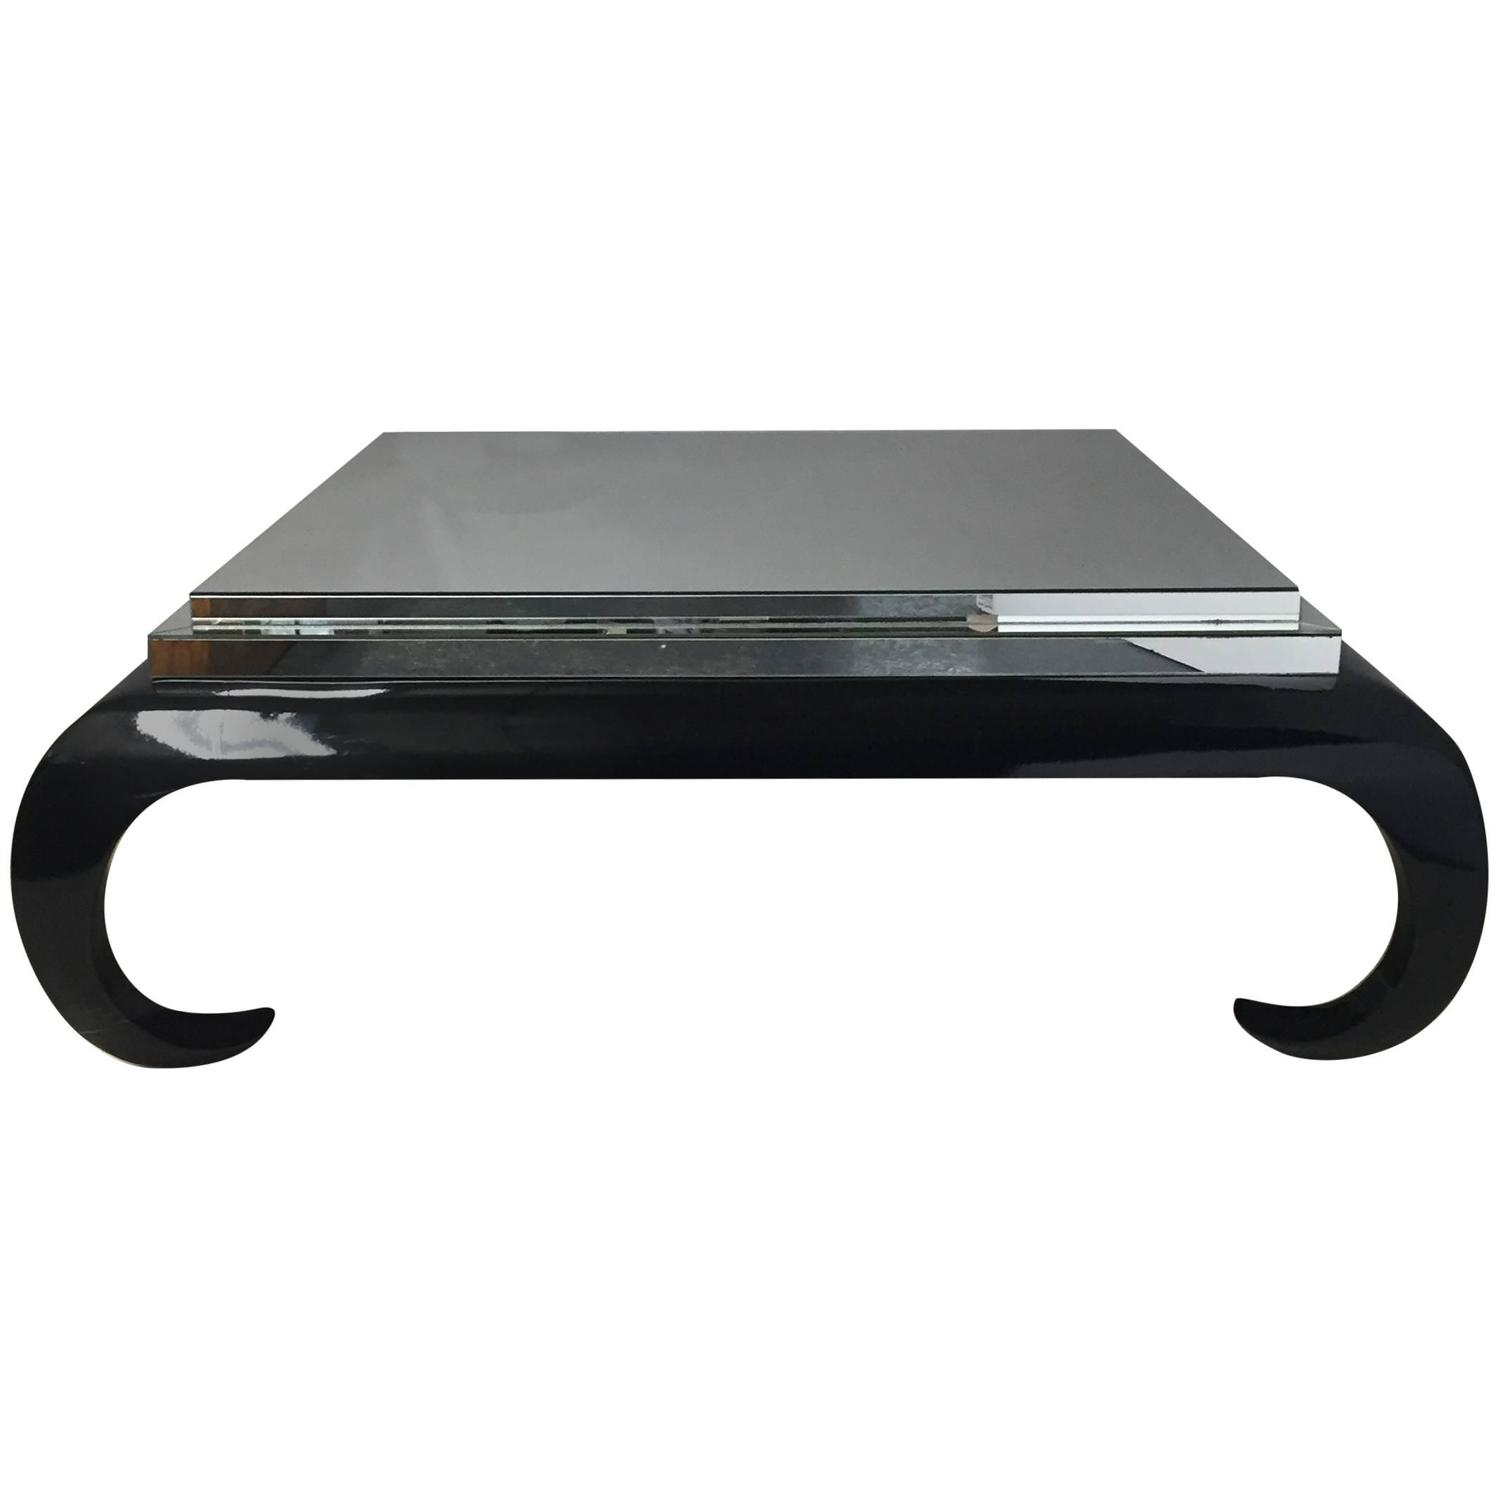 Large Square Black Laquer And Mirrored Coffee Cocktail Table For Sale At 1stdibs